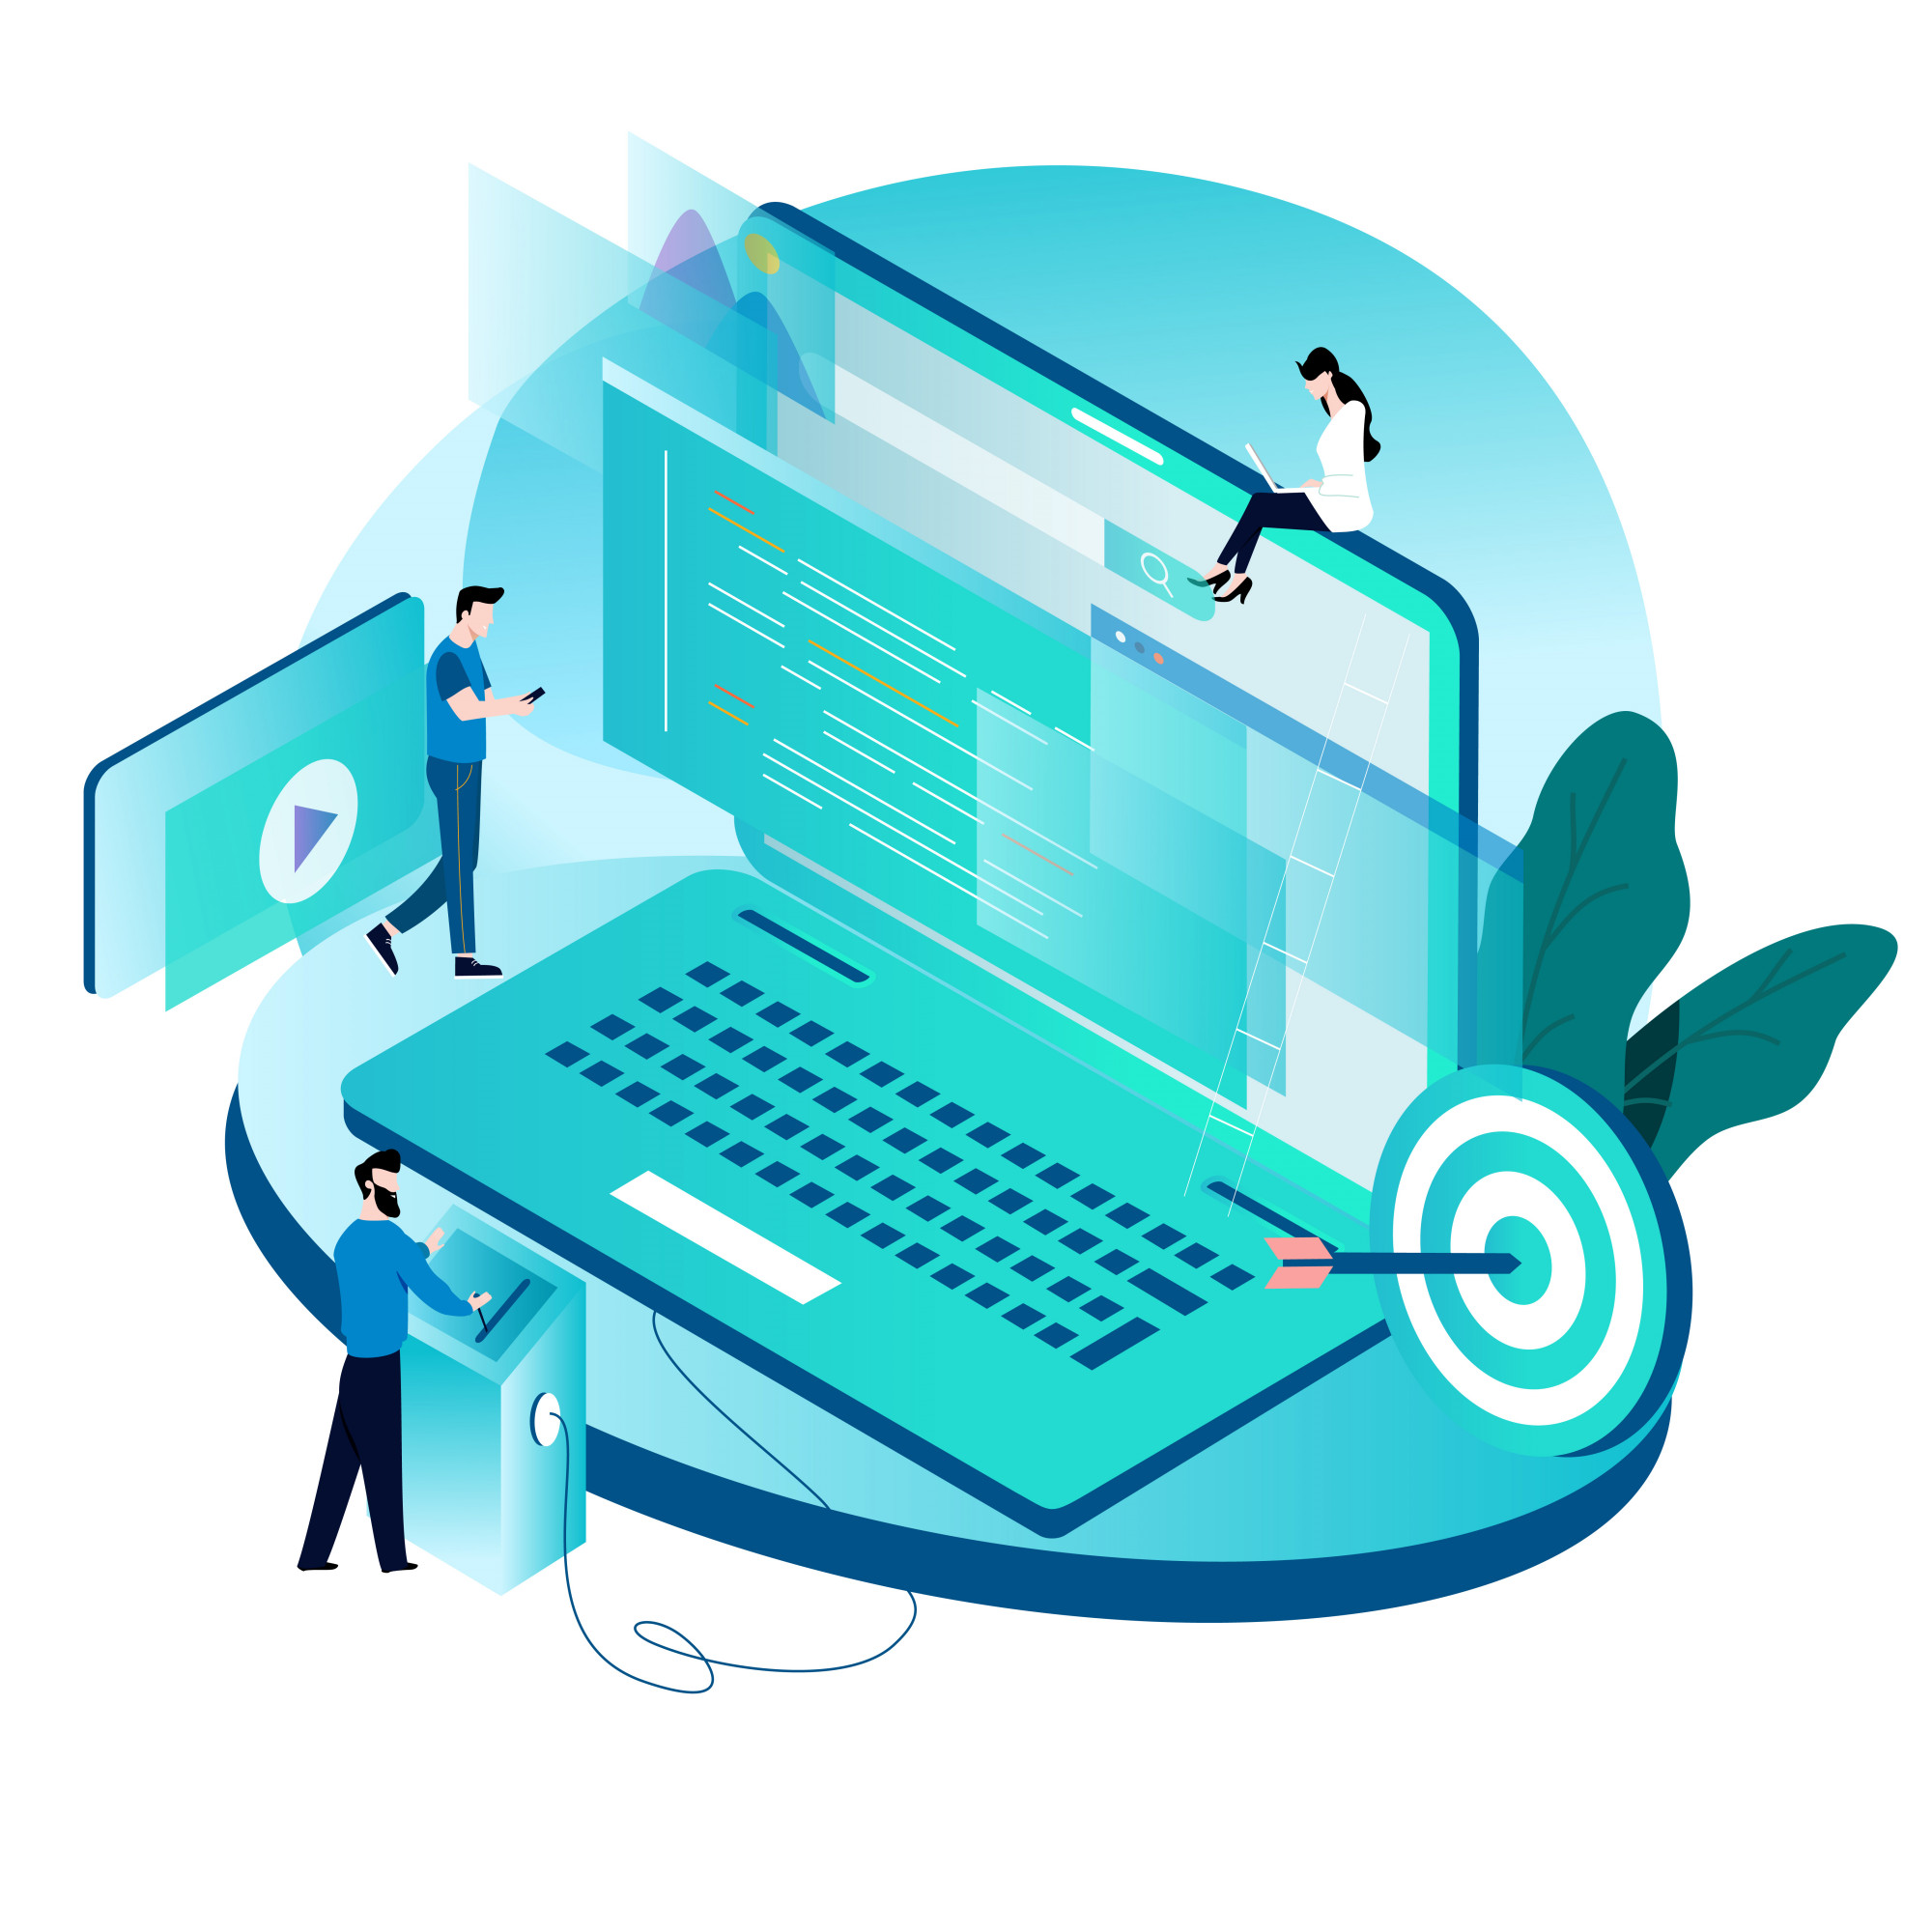 Isometric concept for coding, programming, website and application development